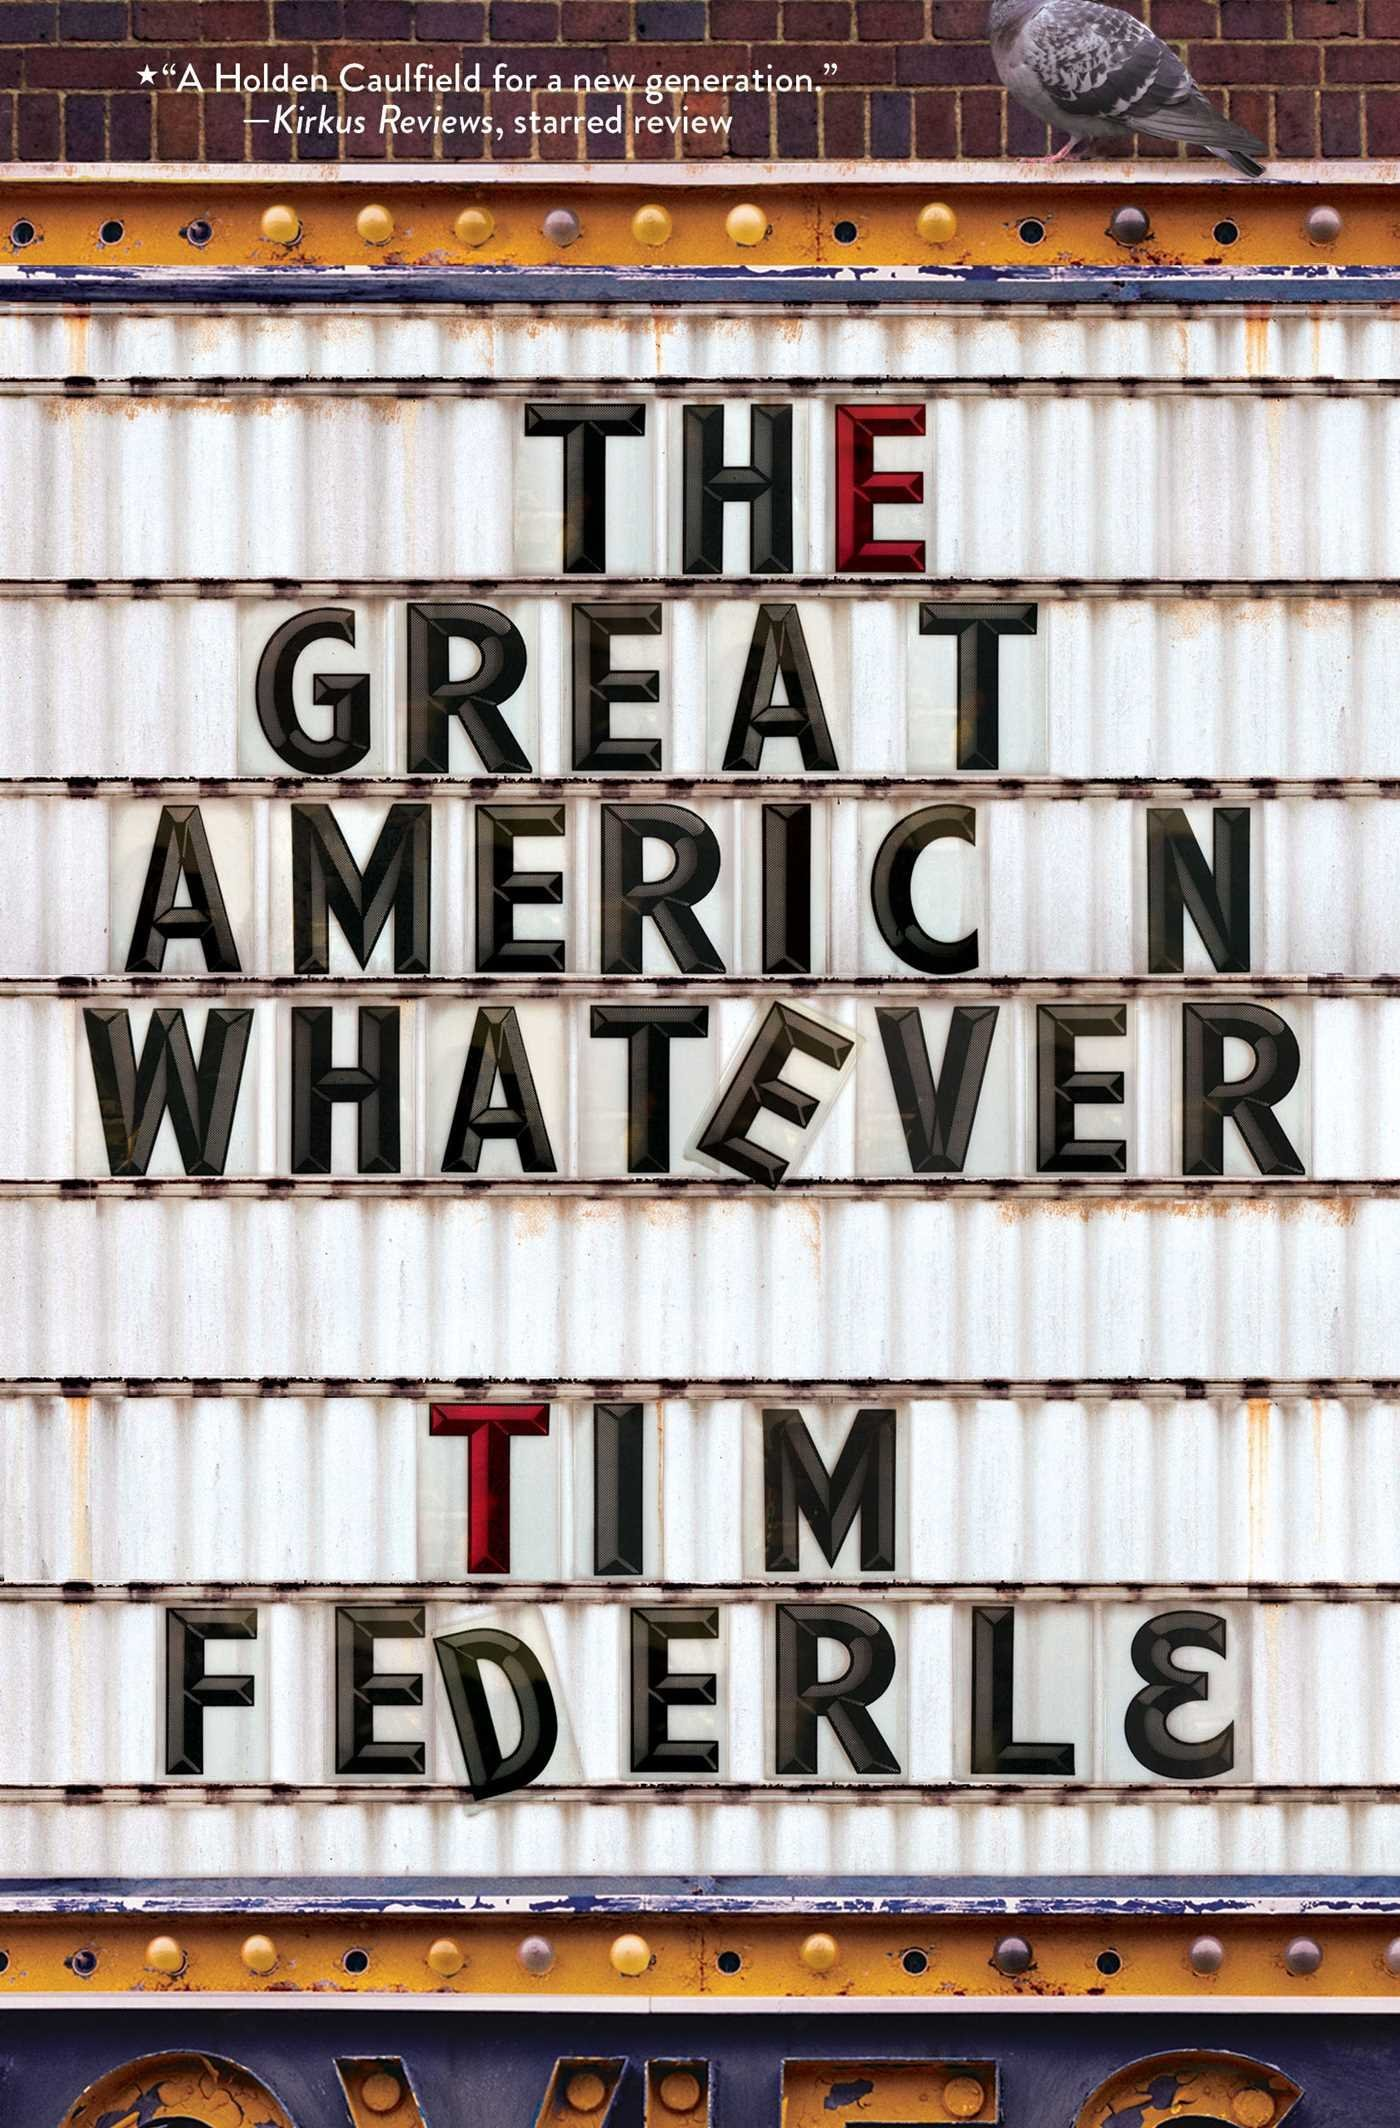 The Great American Whatever Image